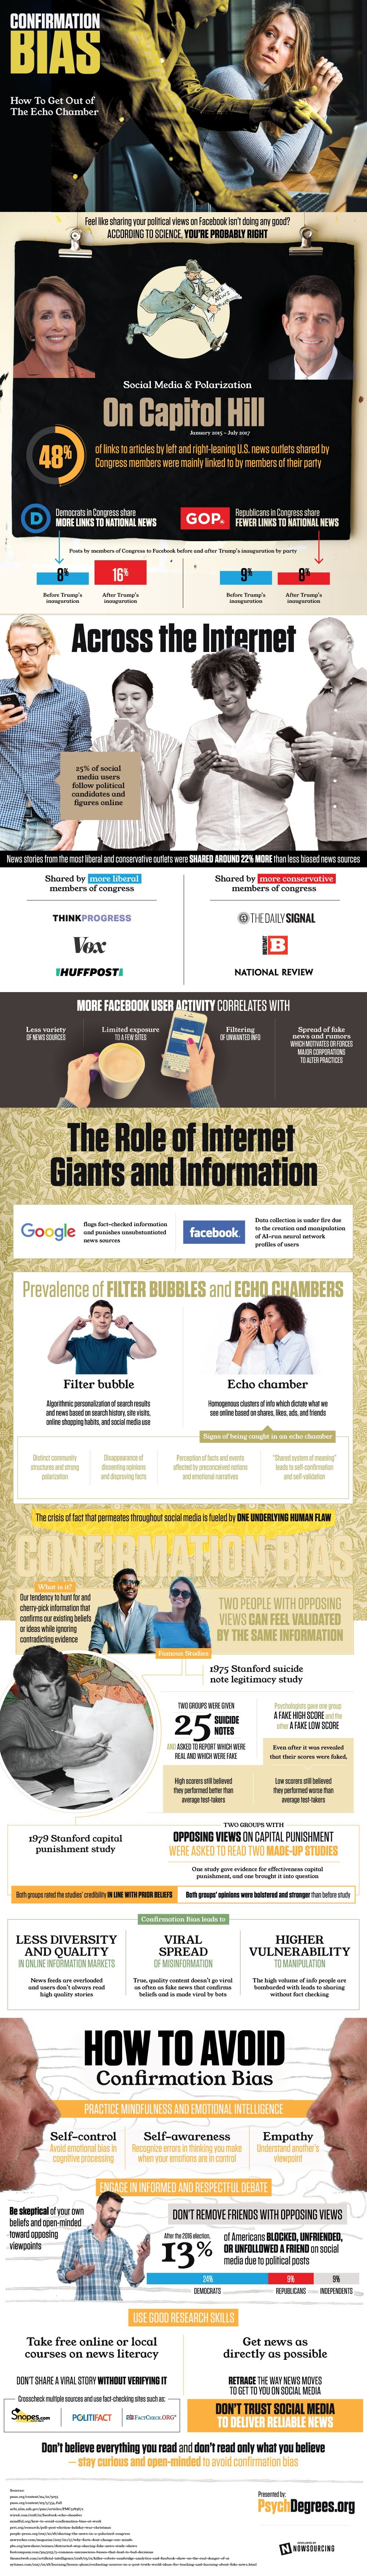 Is Social Media Putting Us All In An Echo Chamber? - #infographic